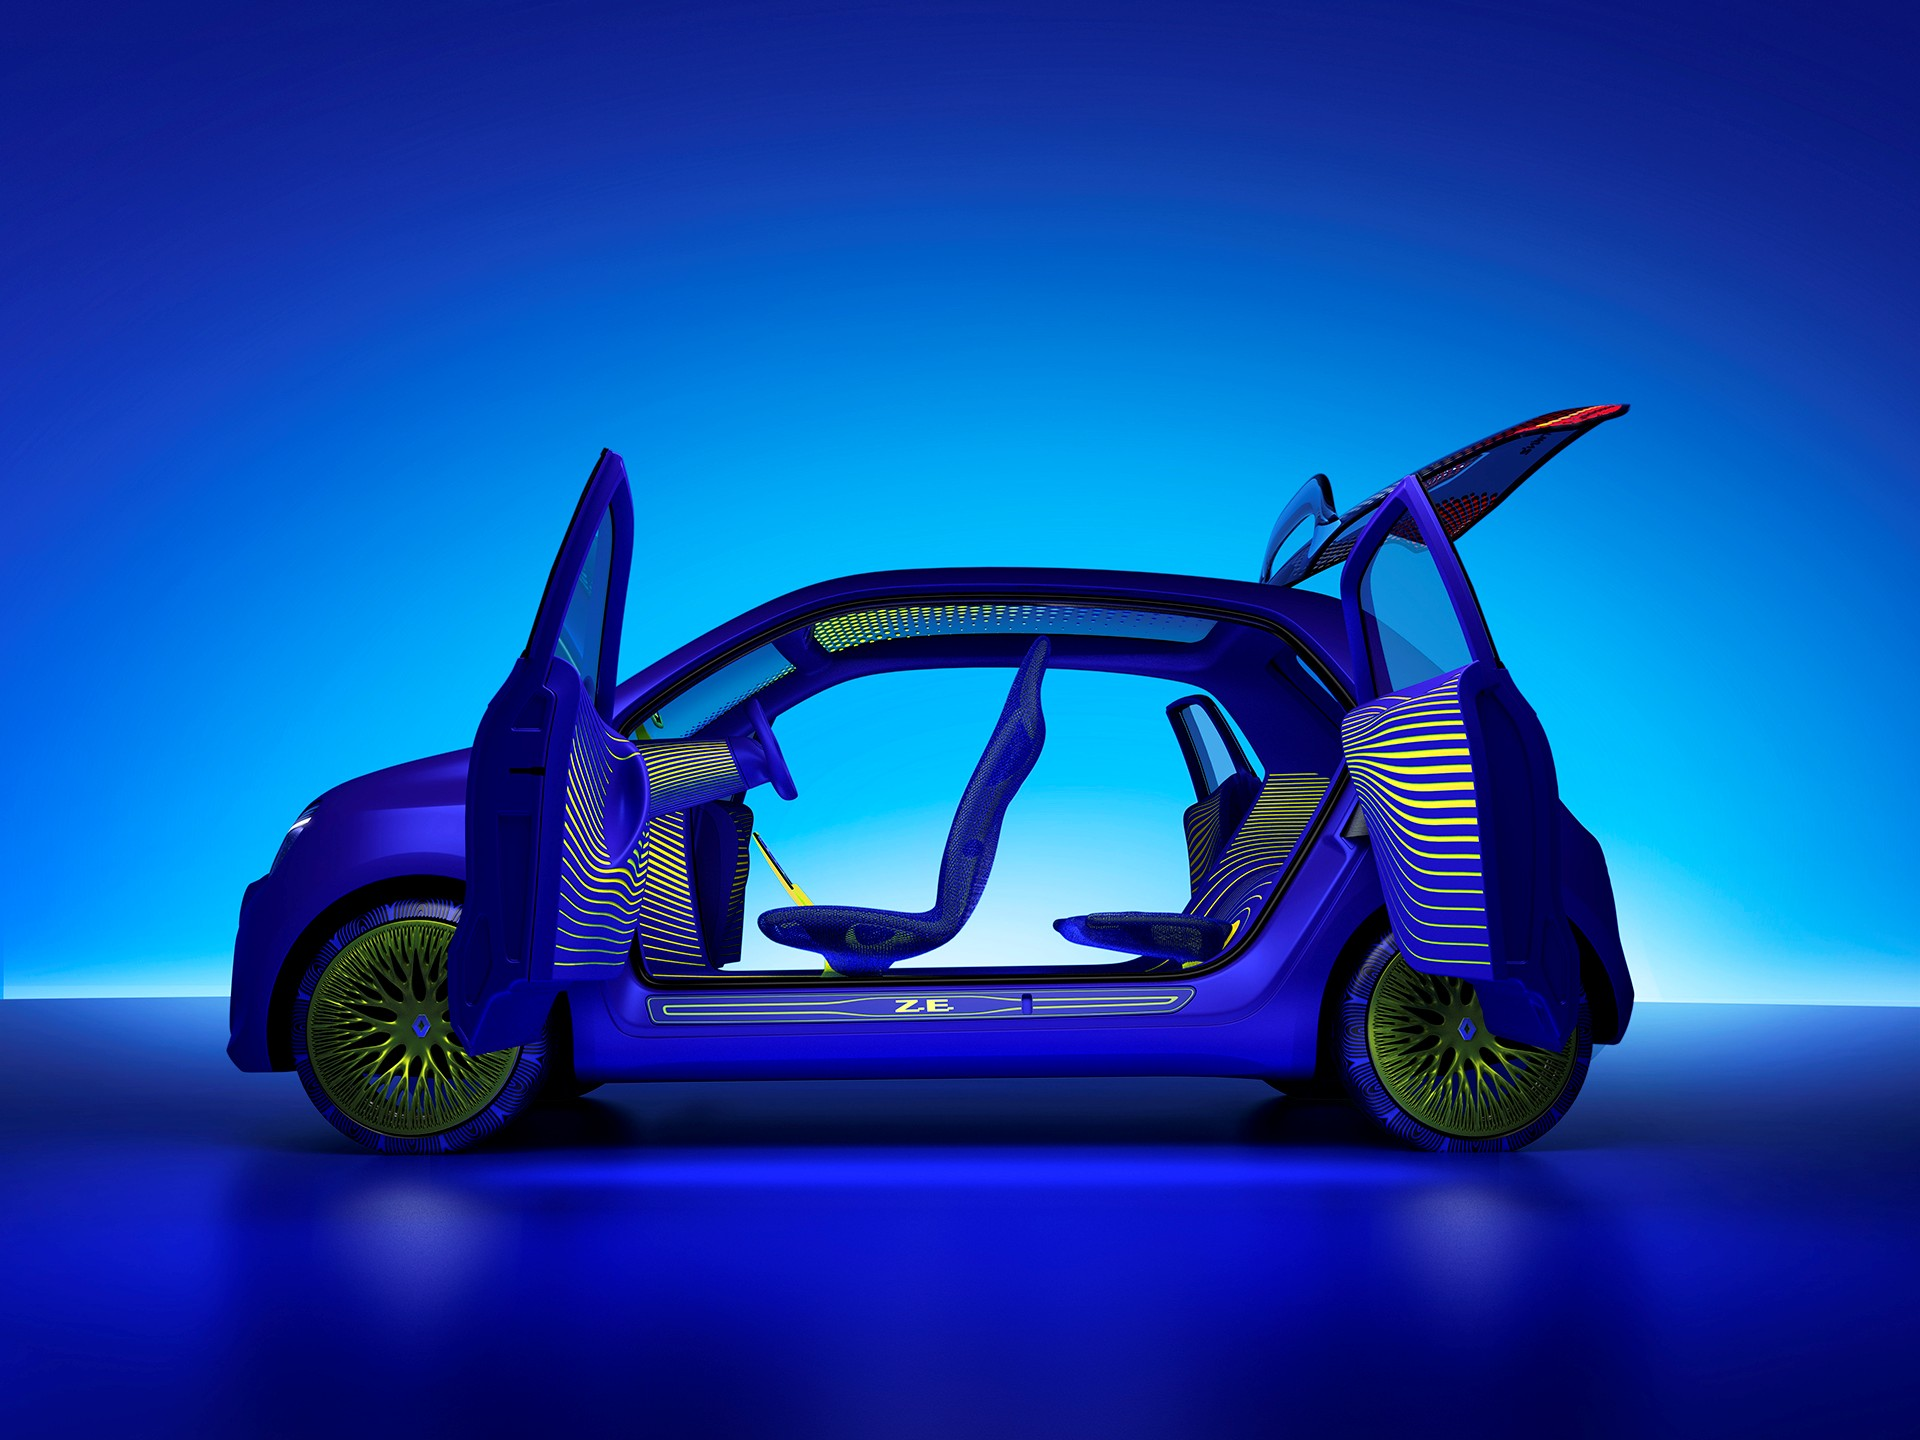 Renault says it will reveal the all-electric variant of its Twingo compact urban car within a year and a half from now.